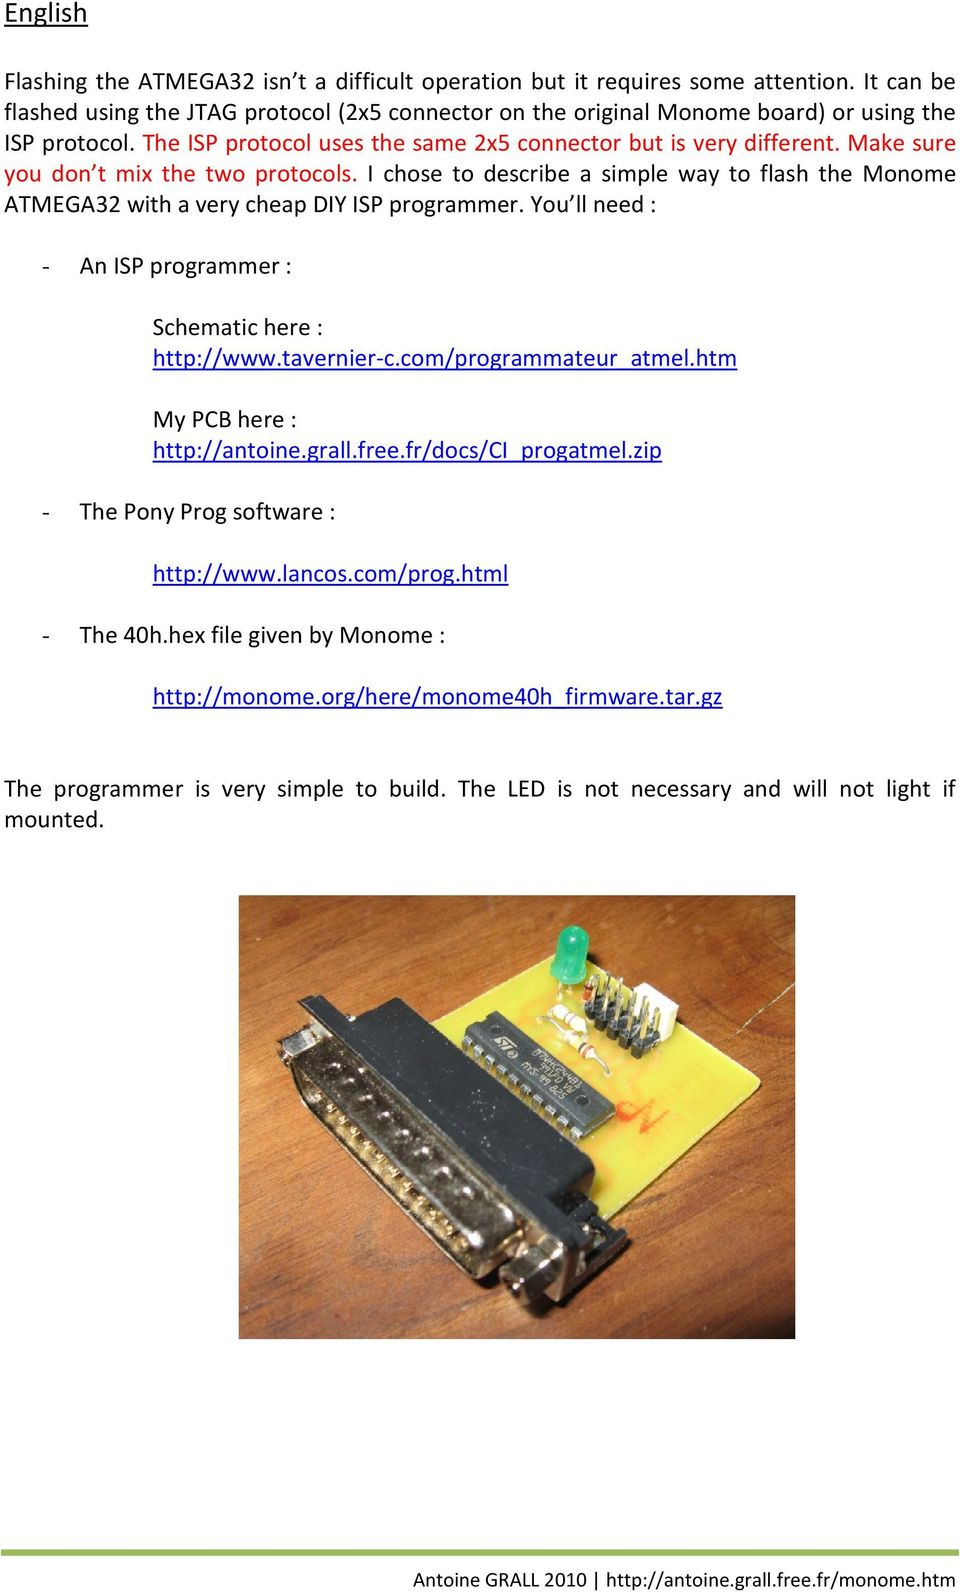 Make sure you don t mix the two protocols. I chose to describe a simple way to flash the Monome ATMEGA32 with a very cheap DIY ISP programmer.